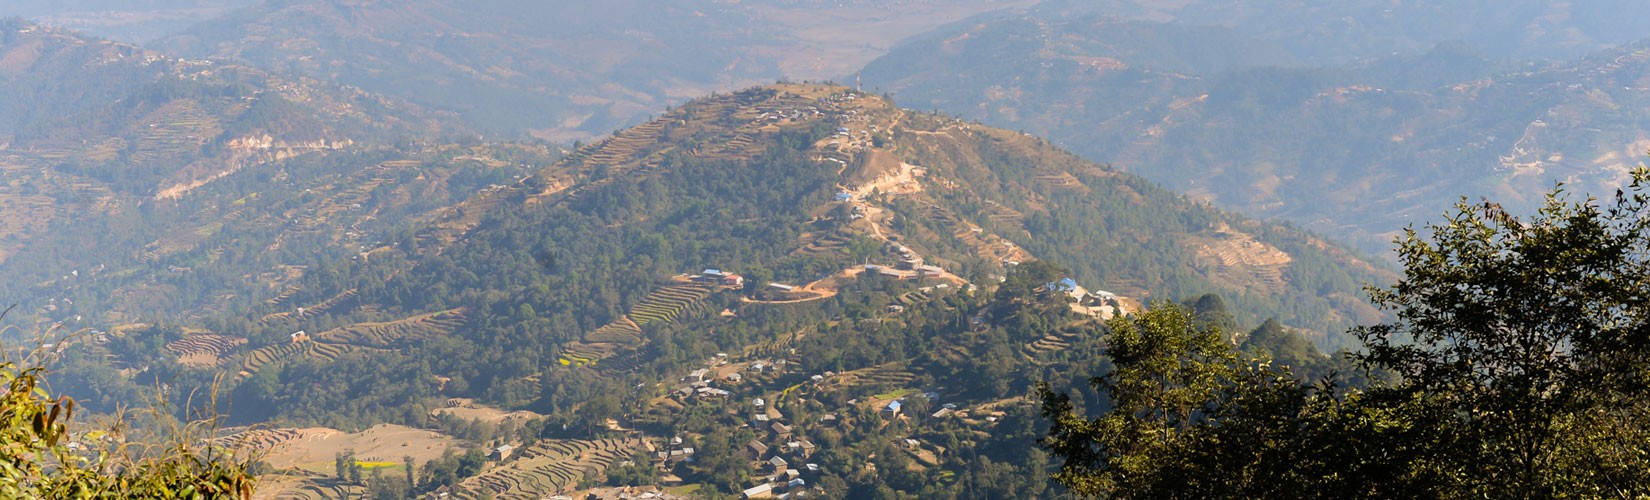 Nagarkot, a world class hill station is located in Bhaktapur district, 28 kilometer north from Kathmandu. It is one of the best destinations for sunrise view of Himalayas namely, Mt. Everest, Gaurishankar, Langtang, Dorje Lakpa and many more. It also offe